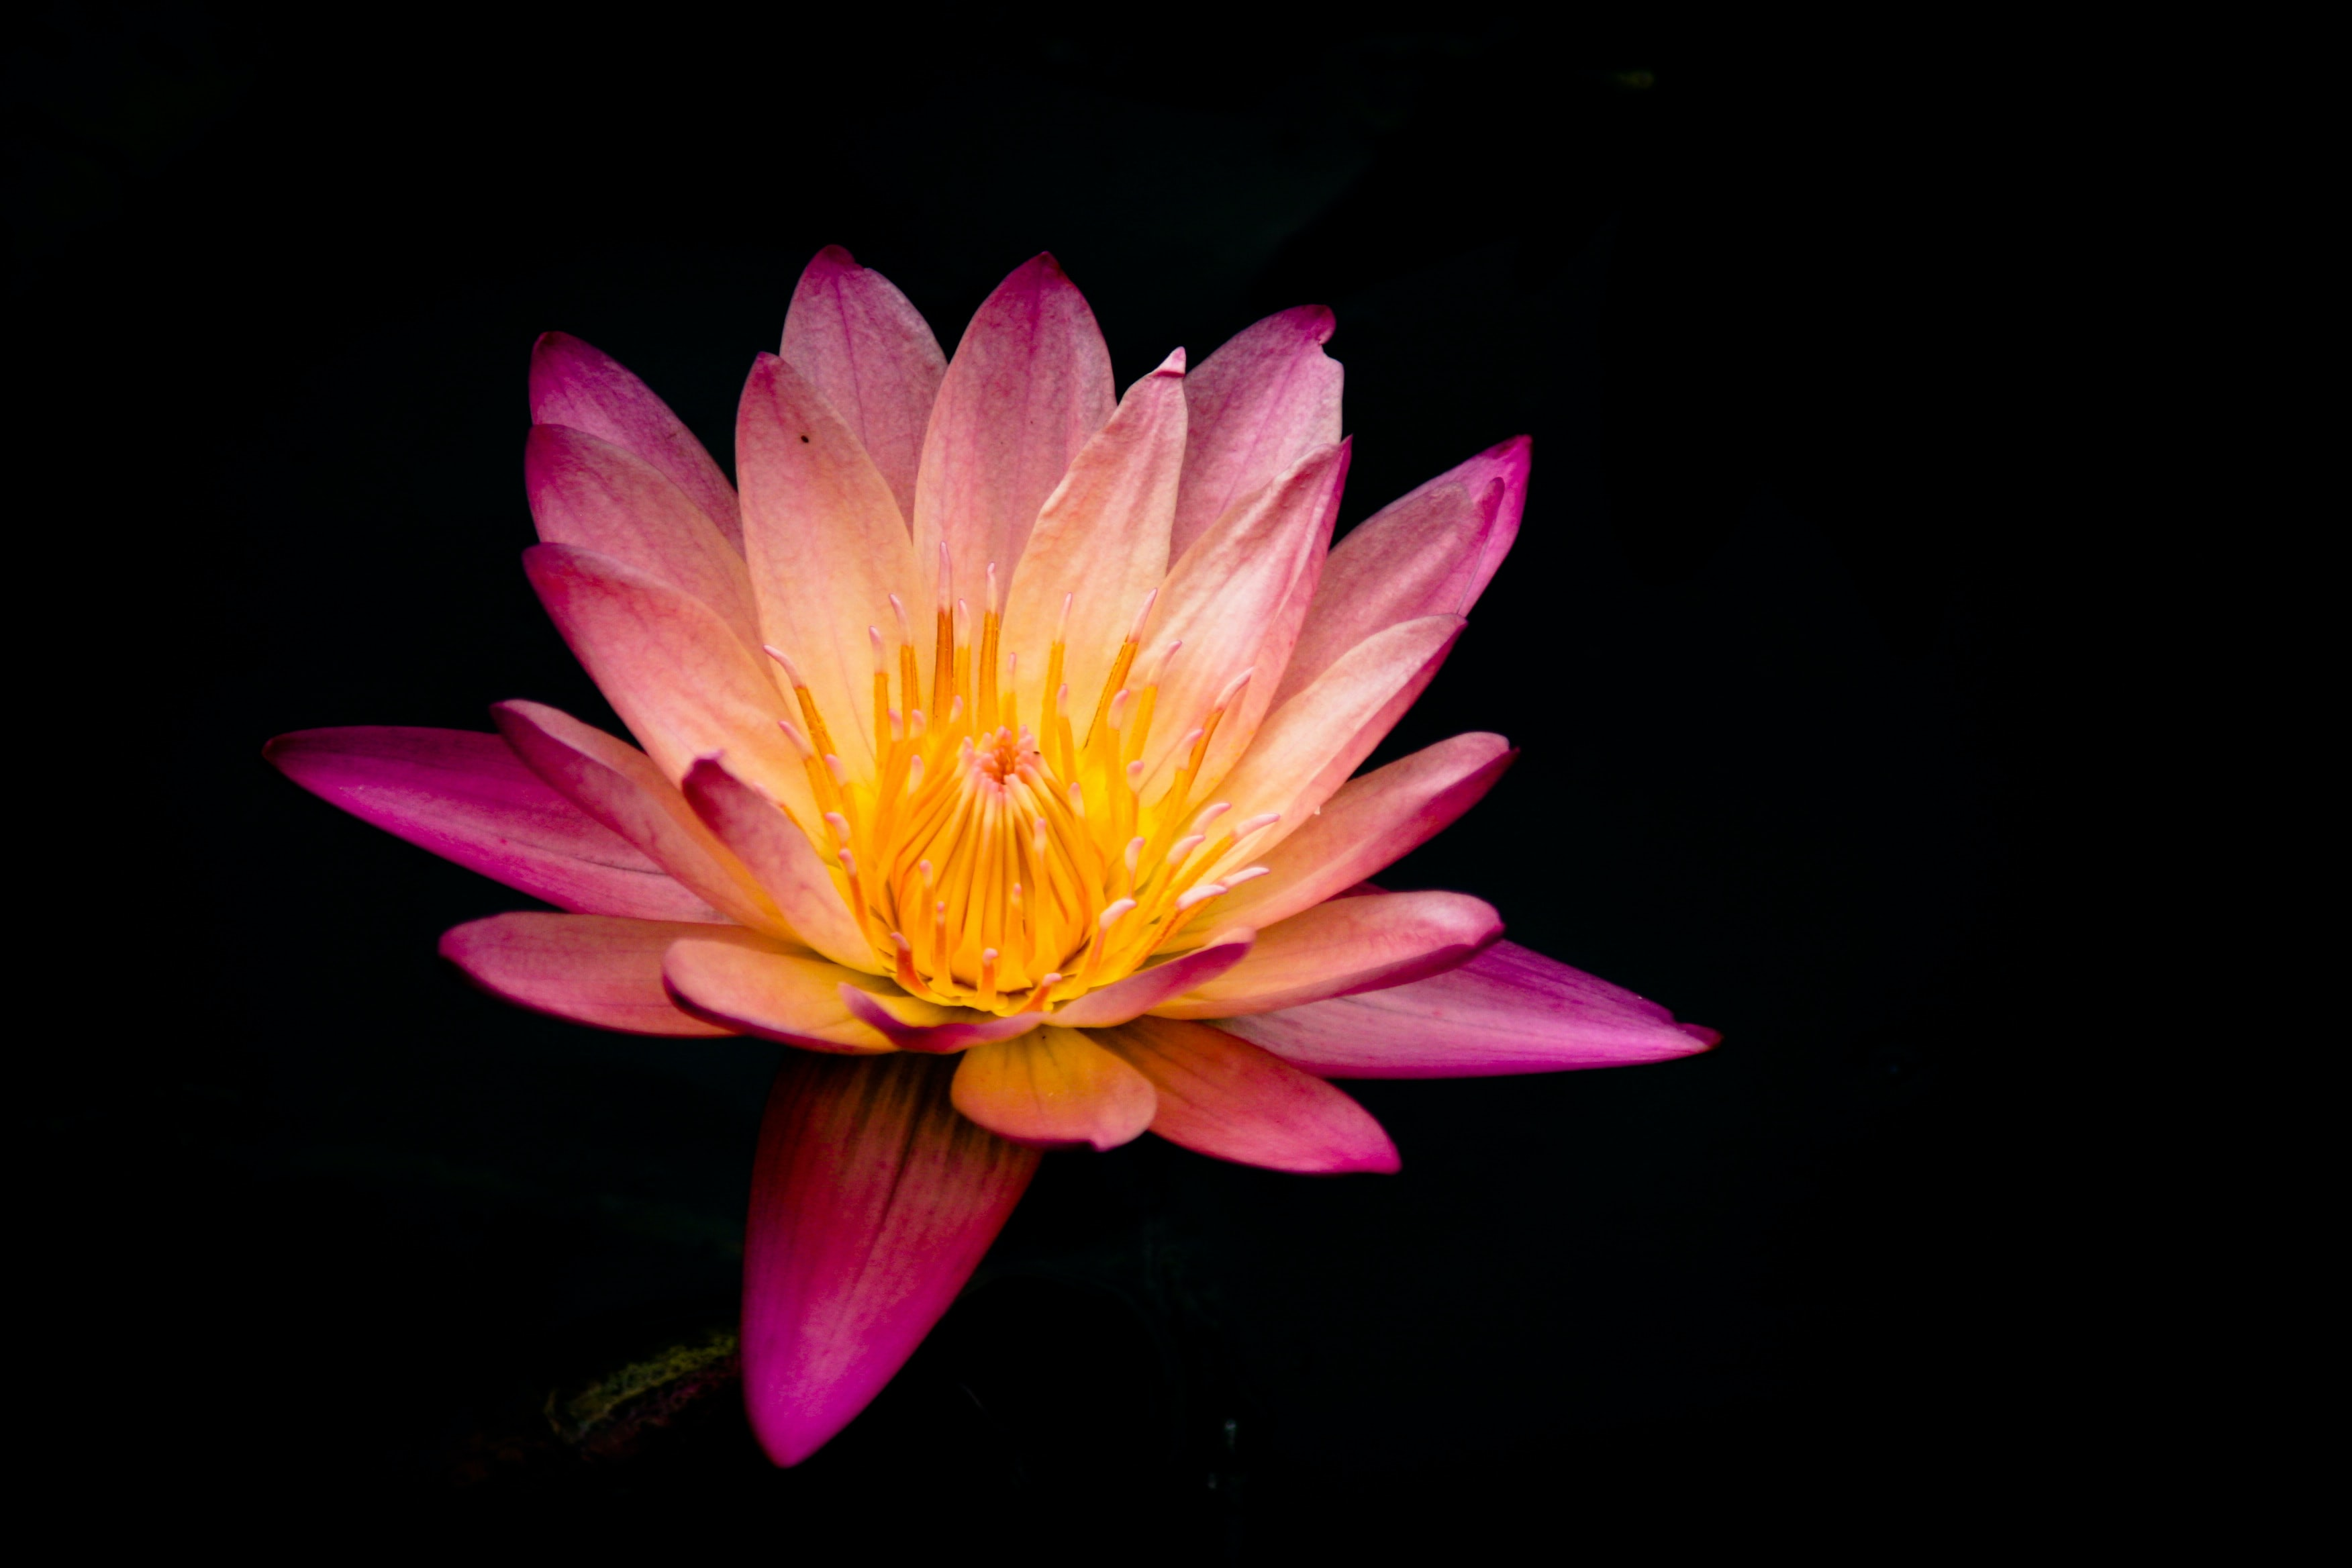 A purple and yellow water lily against a black background